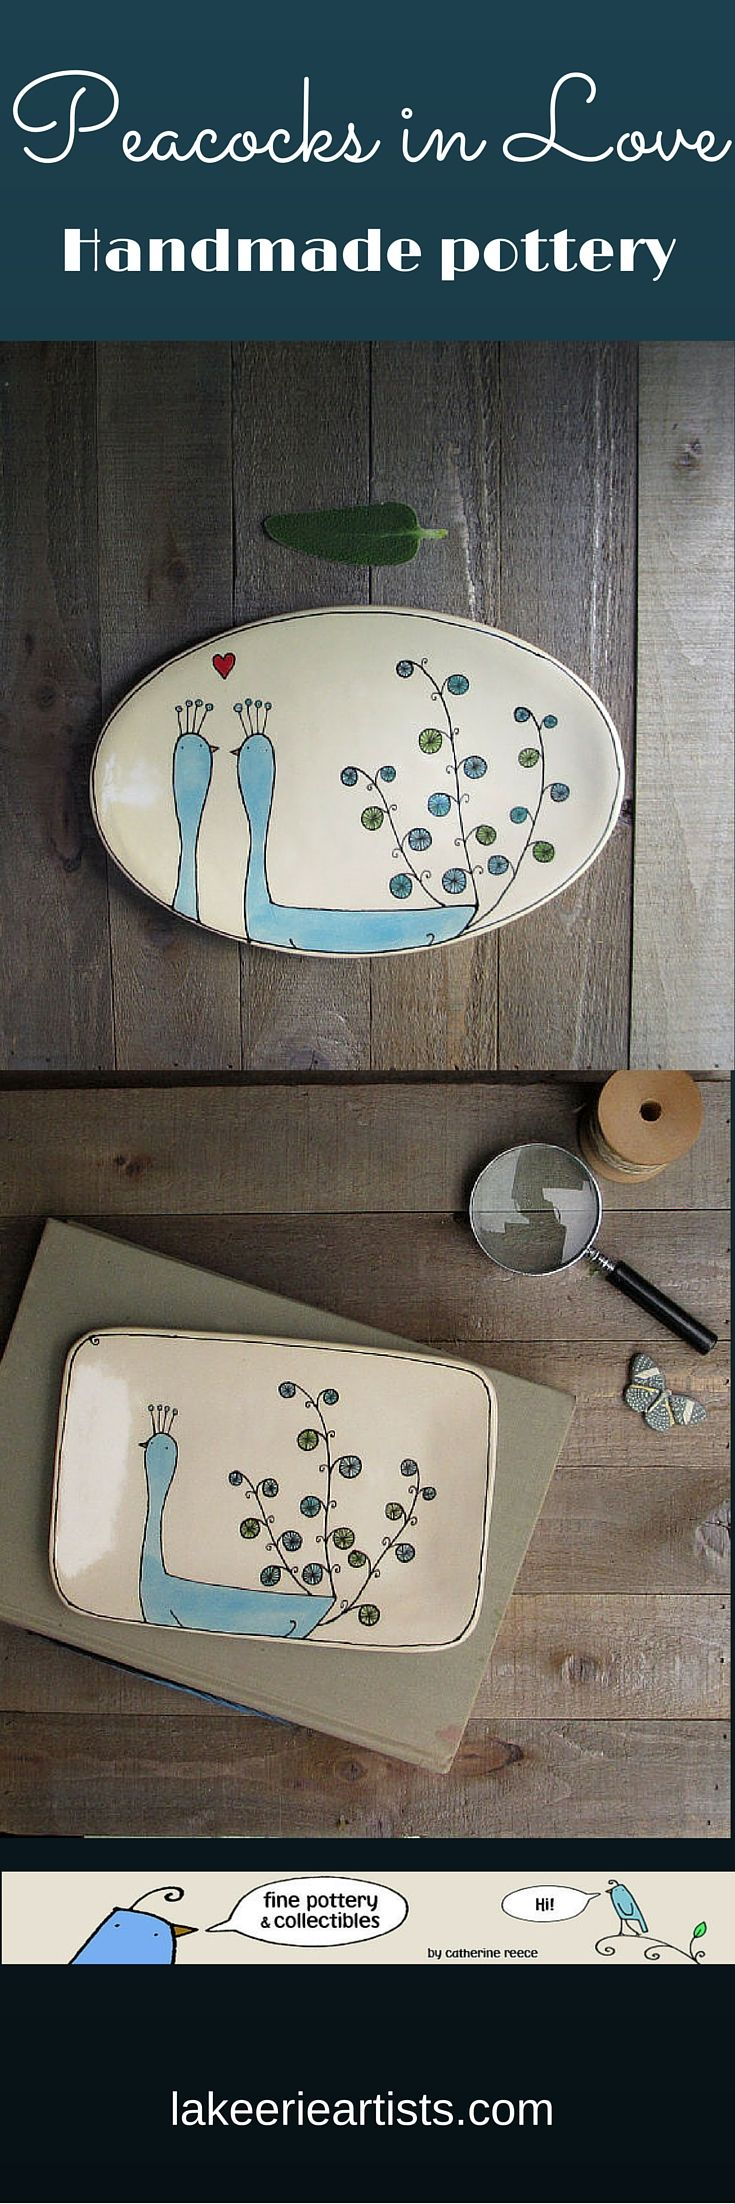 I love this artist's work. Hand drawn peacocks on ceramic plates. So cute! All-occasion gifts. #peacocks #handmade